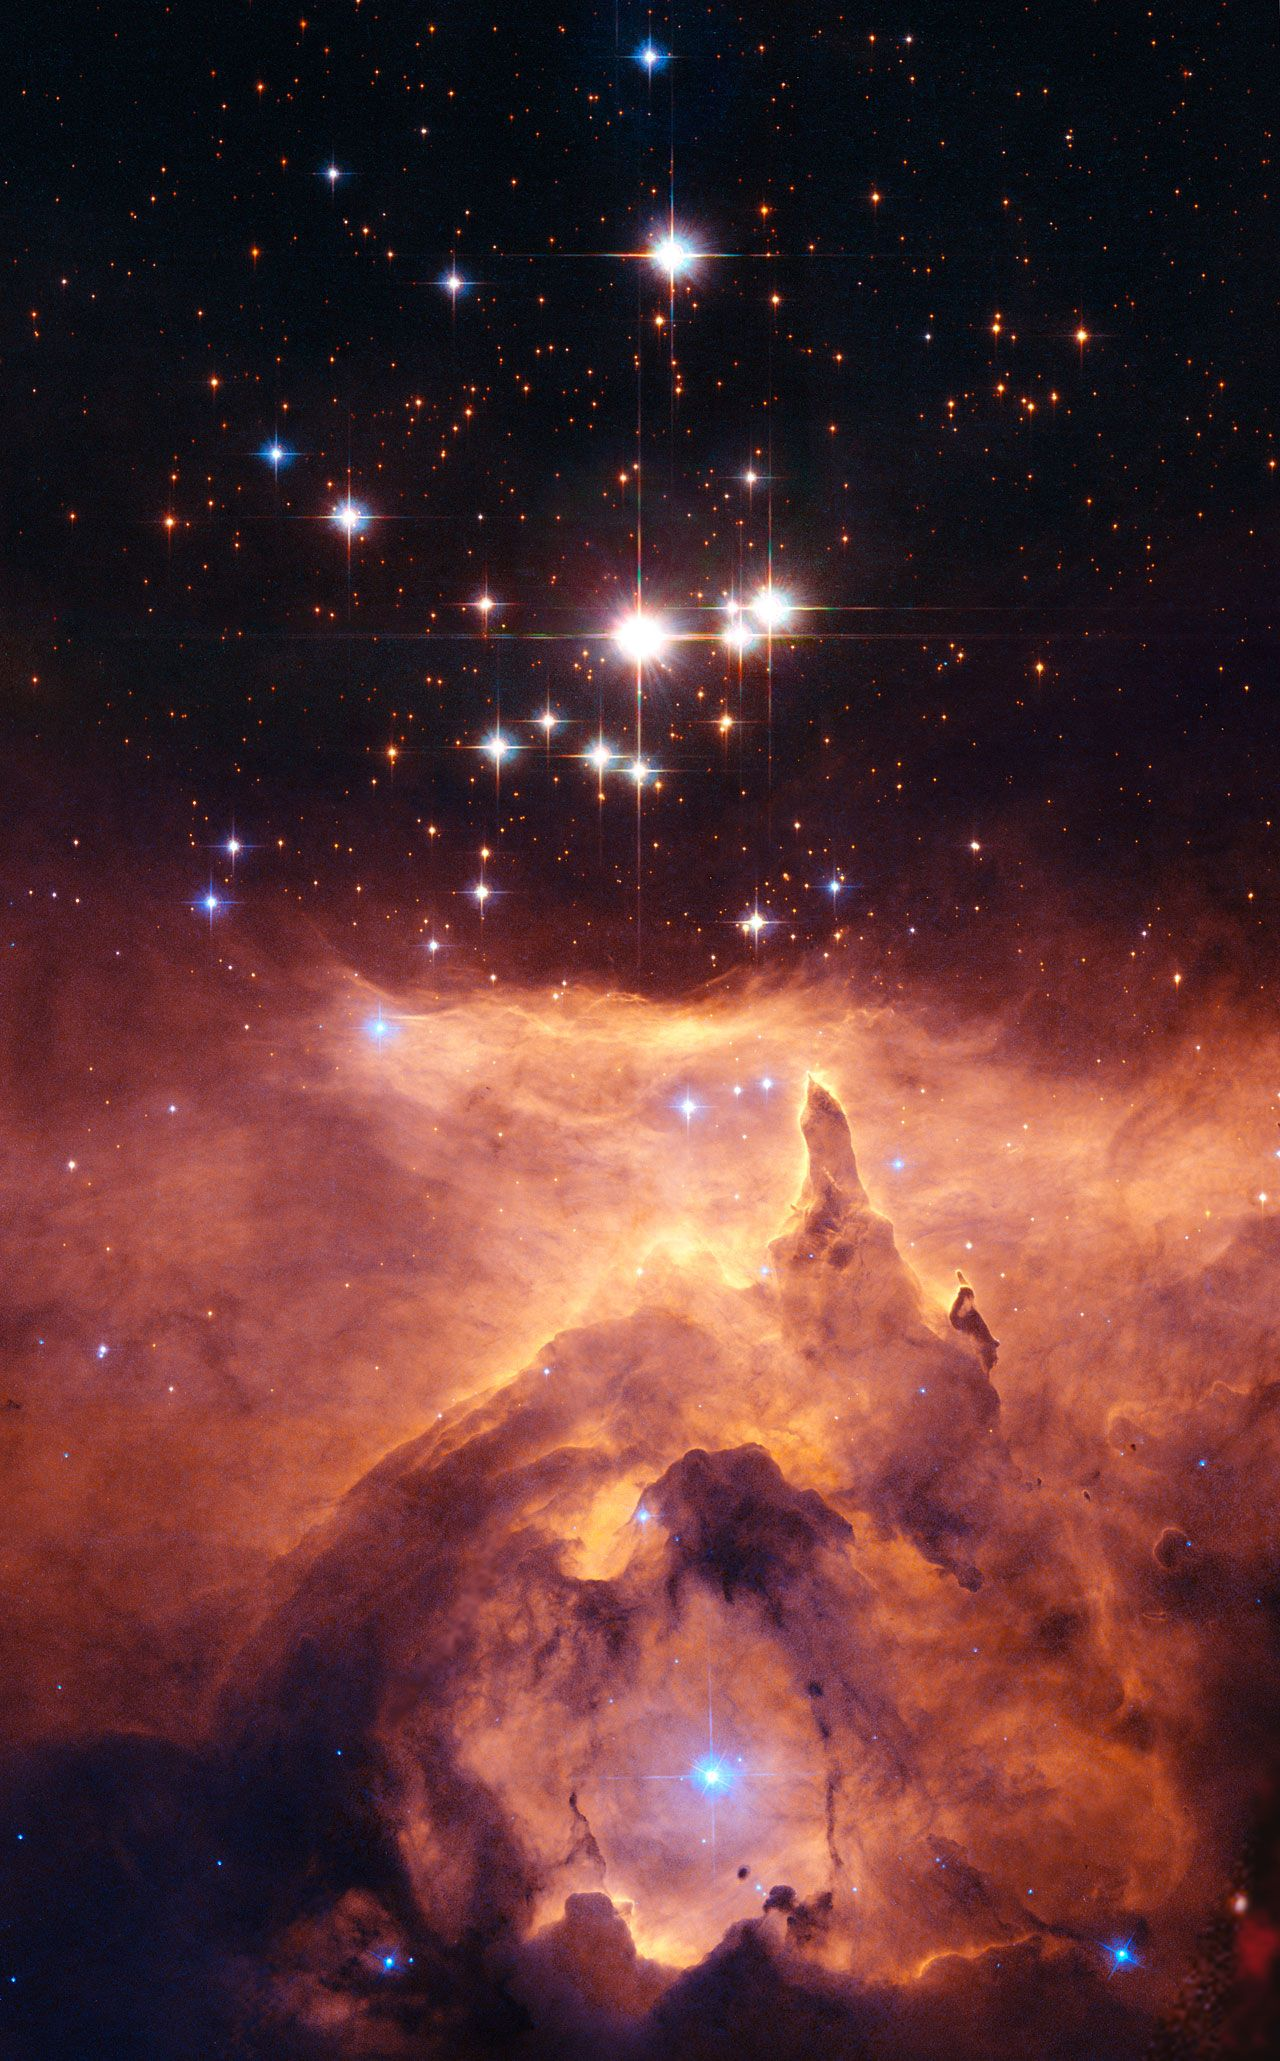 The star cluster Pismis 24 lies in the core of the large